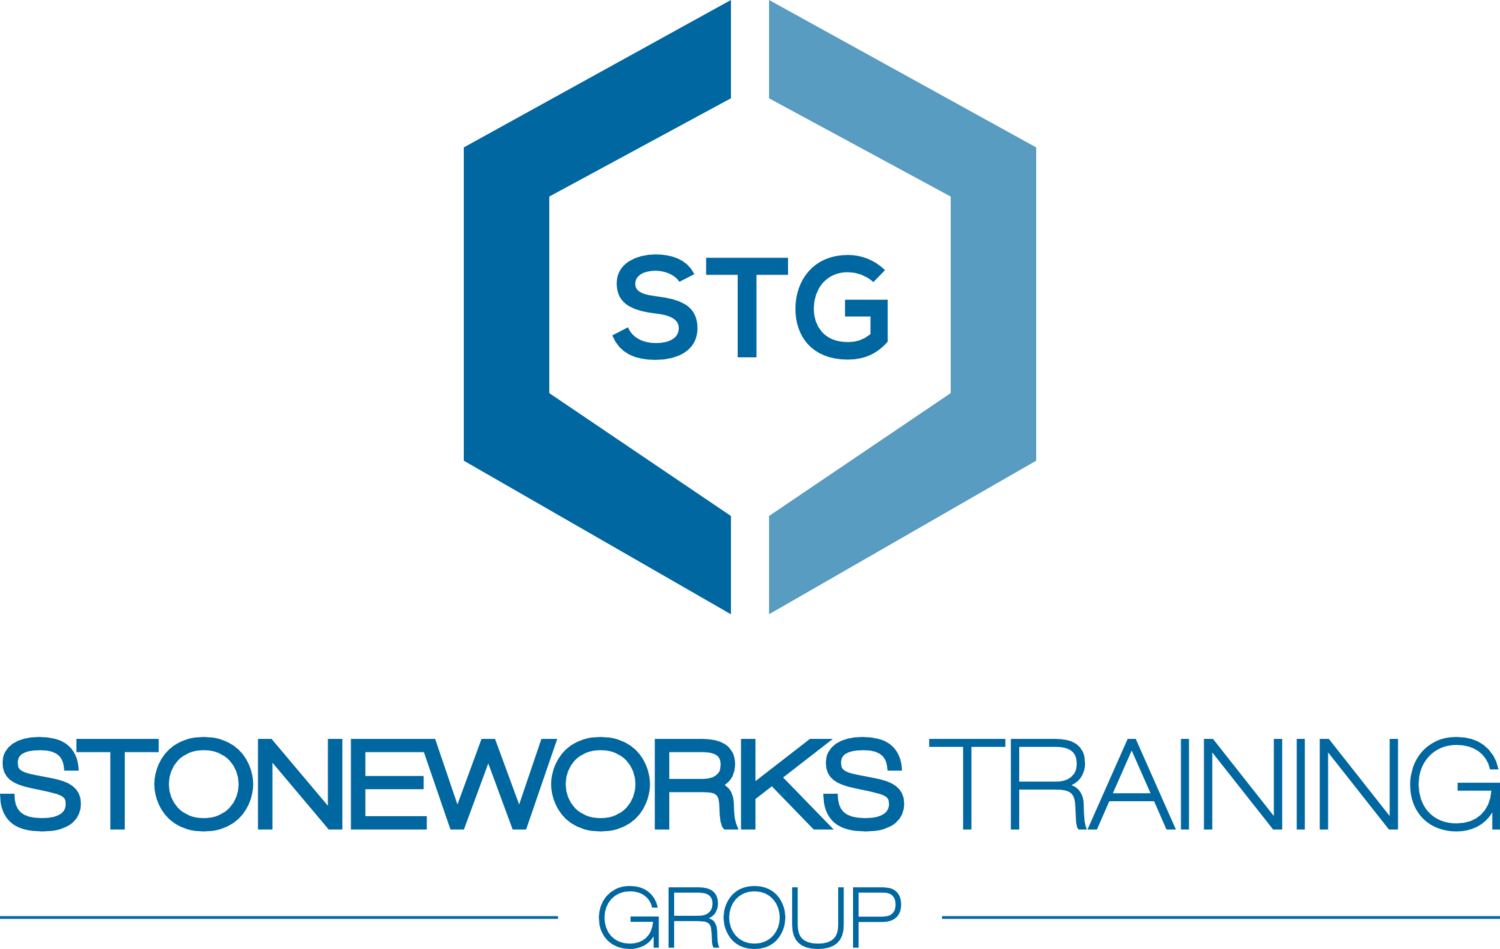 Stoneworks Training Group